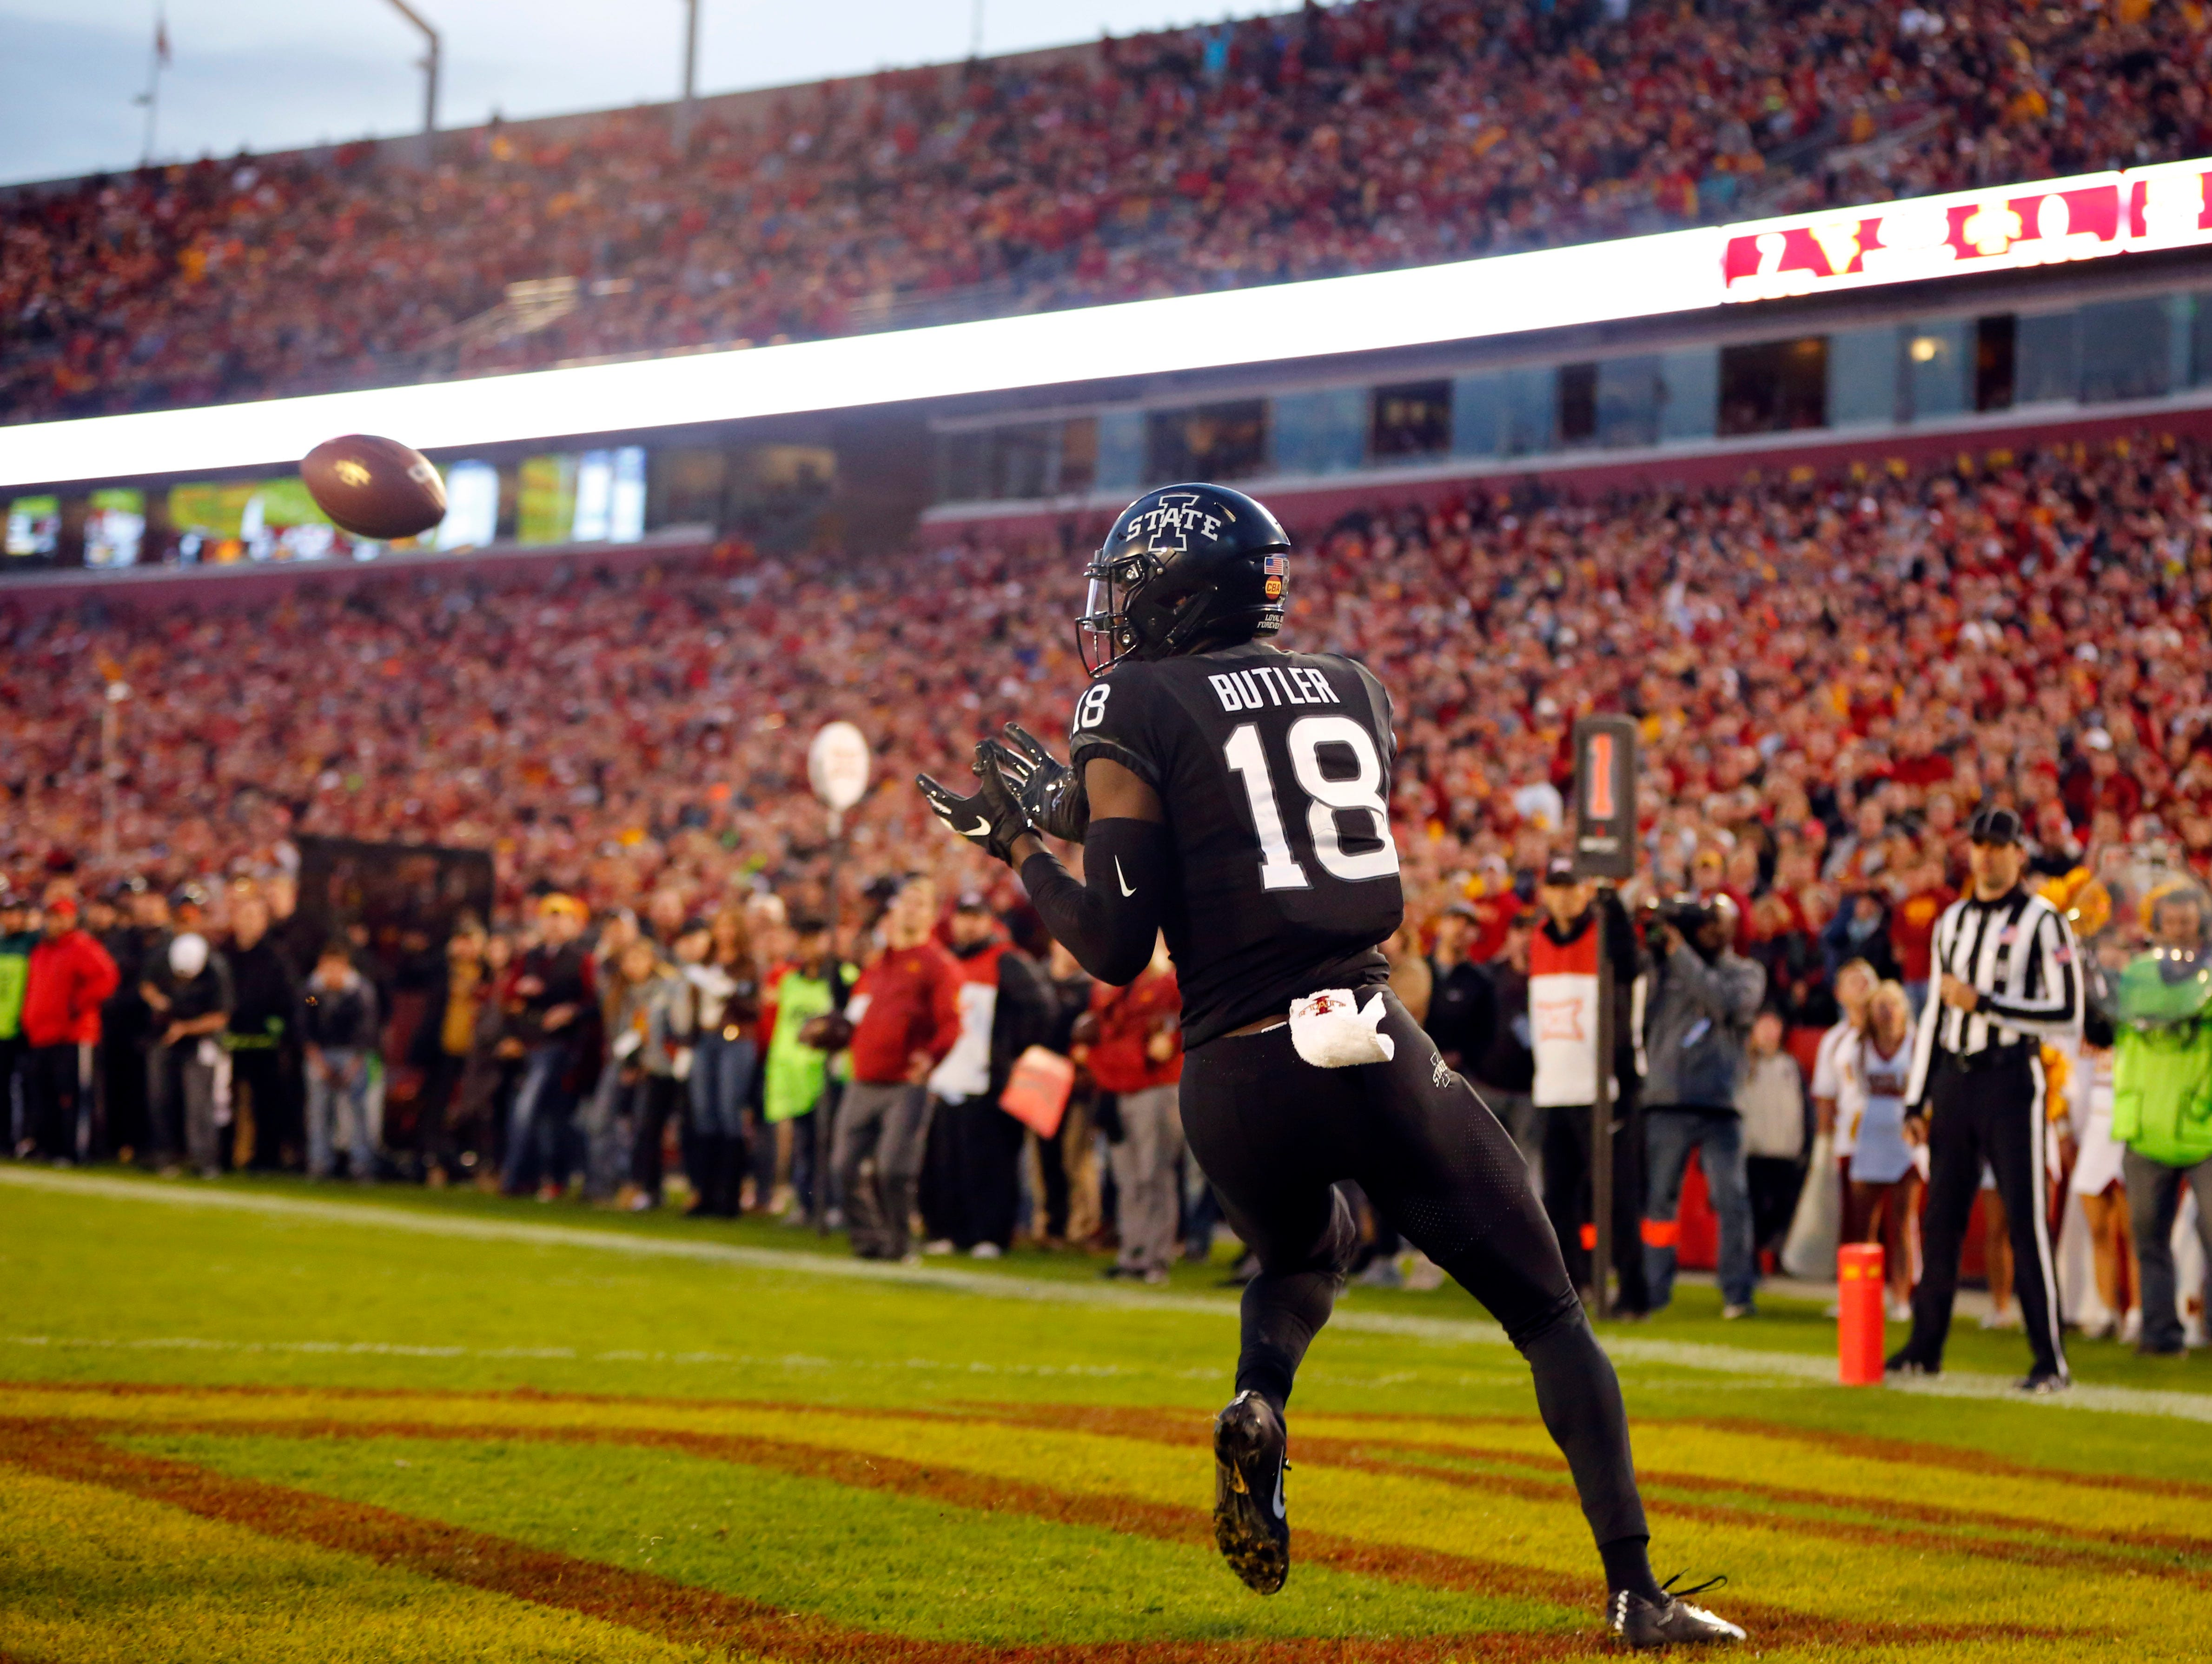 Hakeem Butler catches a touchdown during the Iowa State West Virginia game at Jack Trice Stadium Saturday, Oct. 13, 2018.